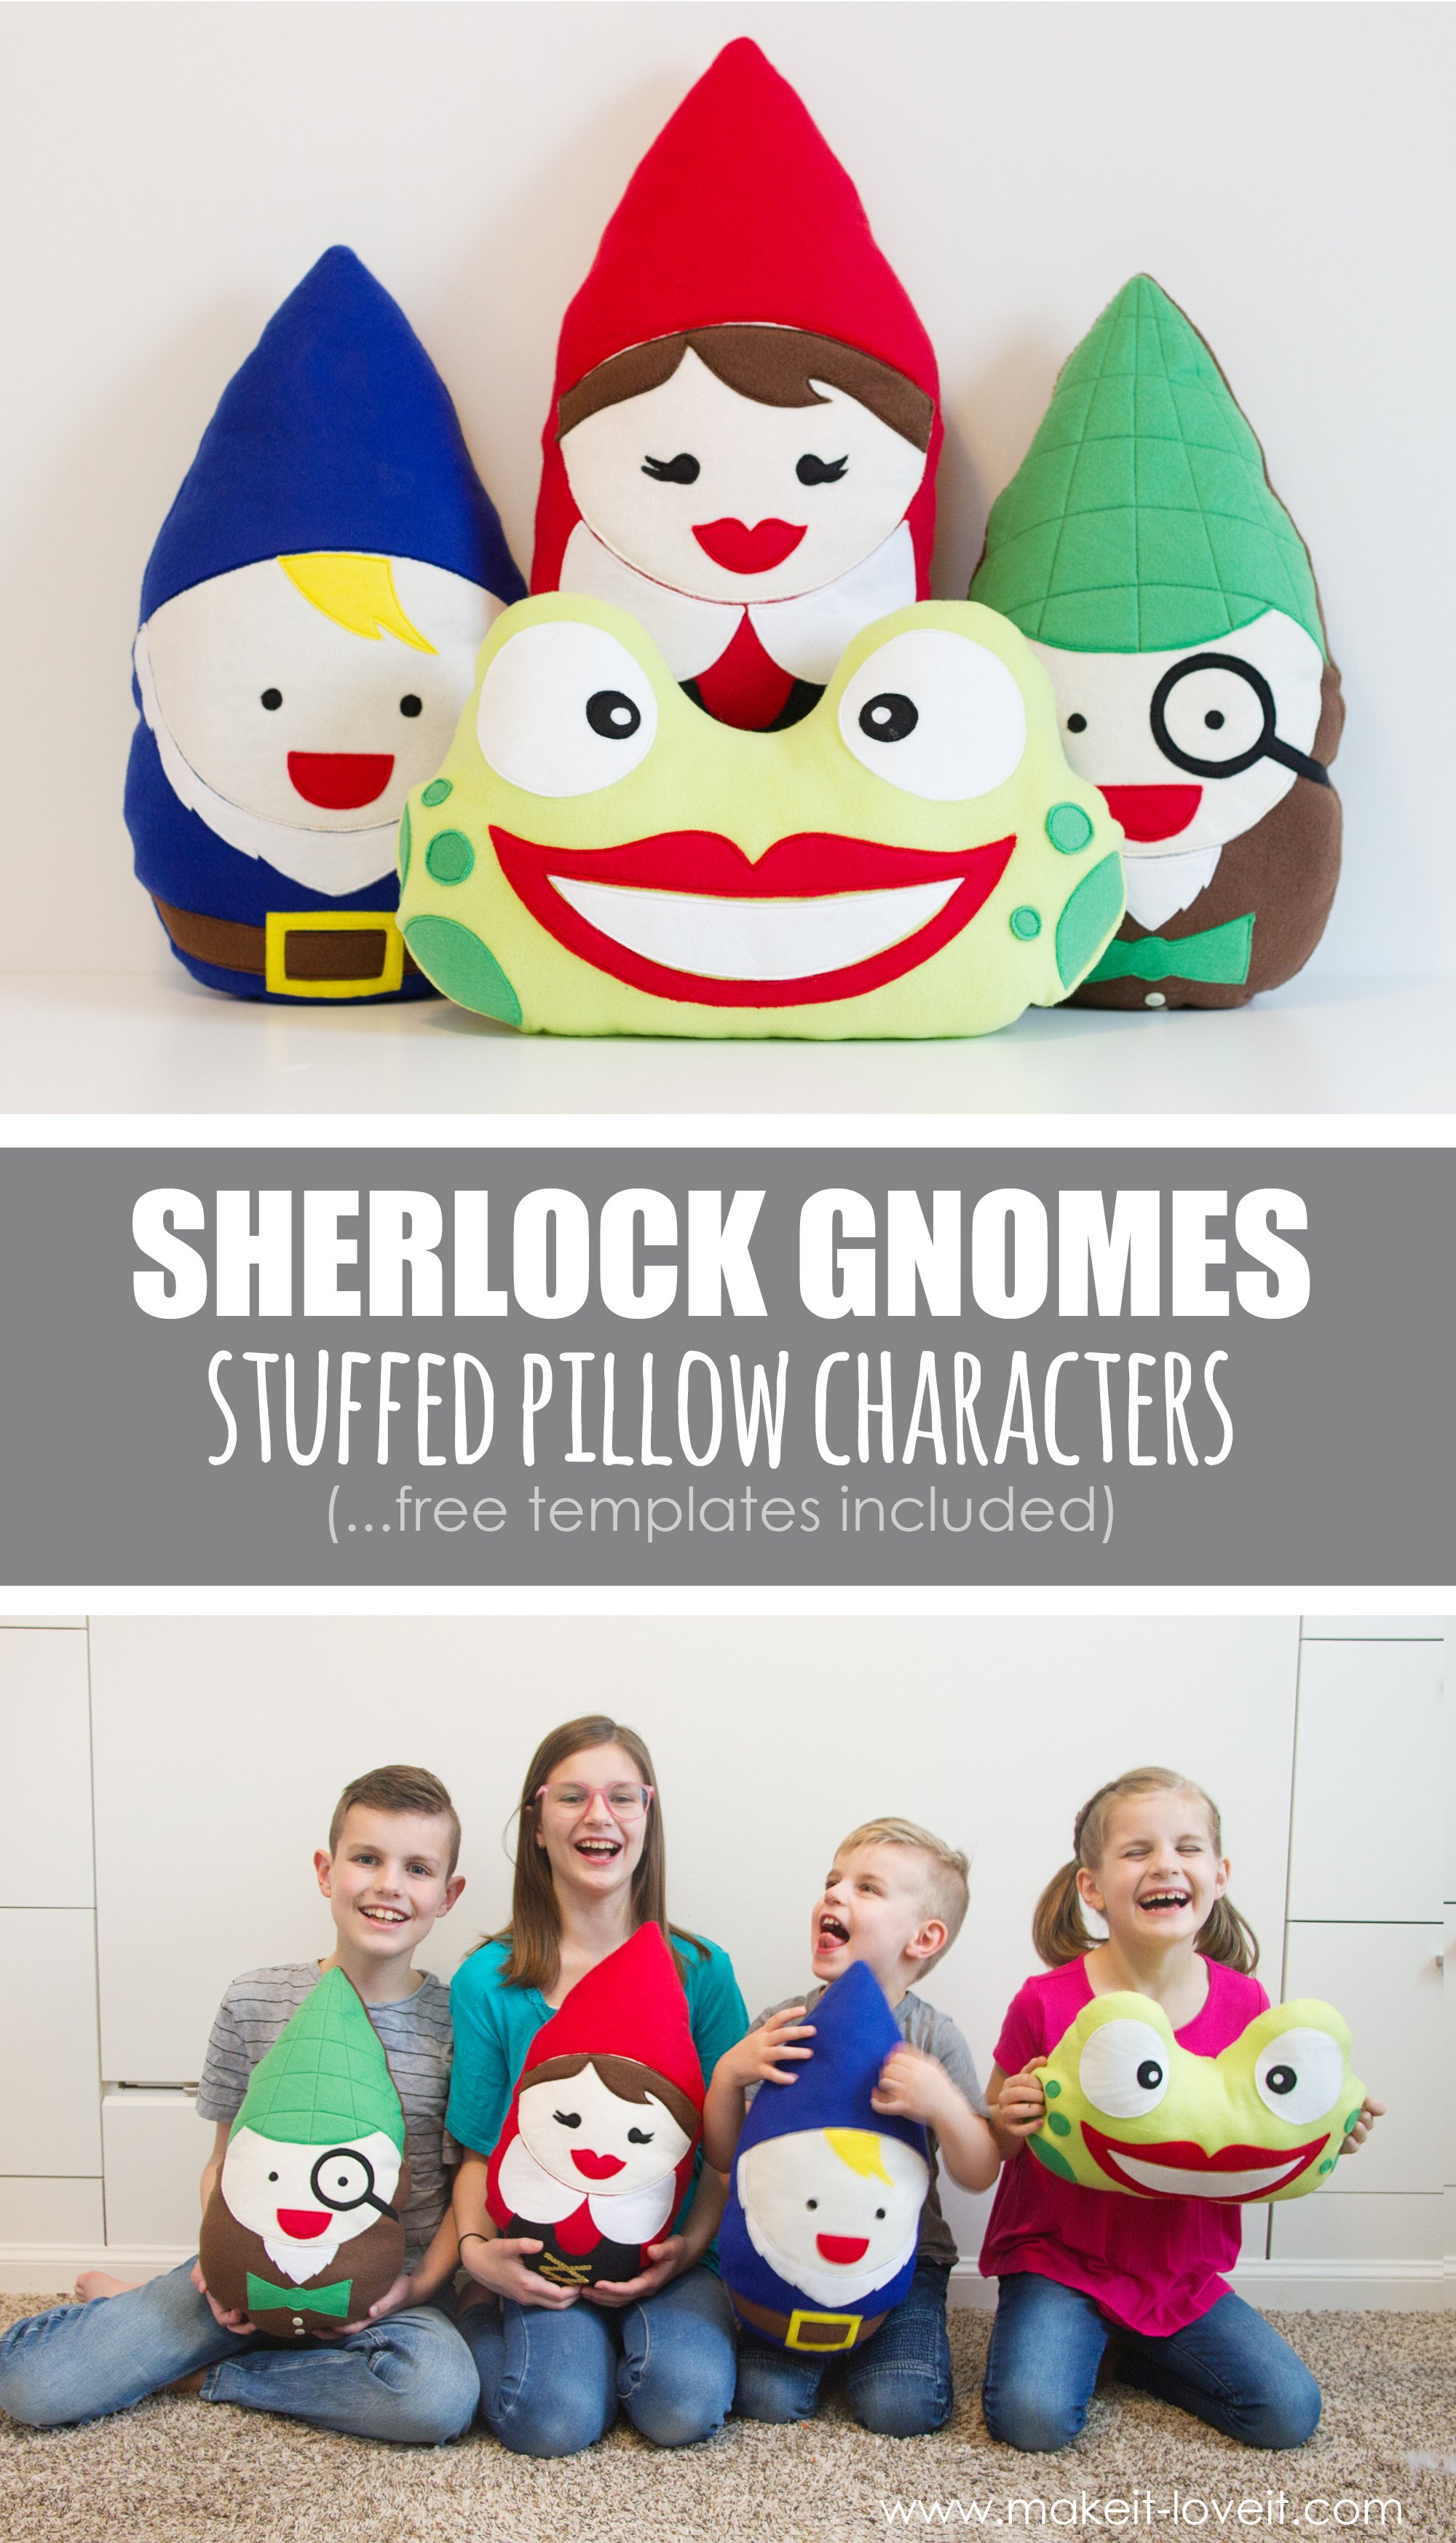 Diy sherlock gnomes stuffed pillow characters (…templates included)